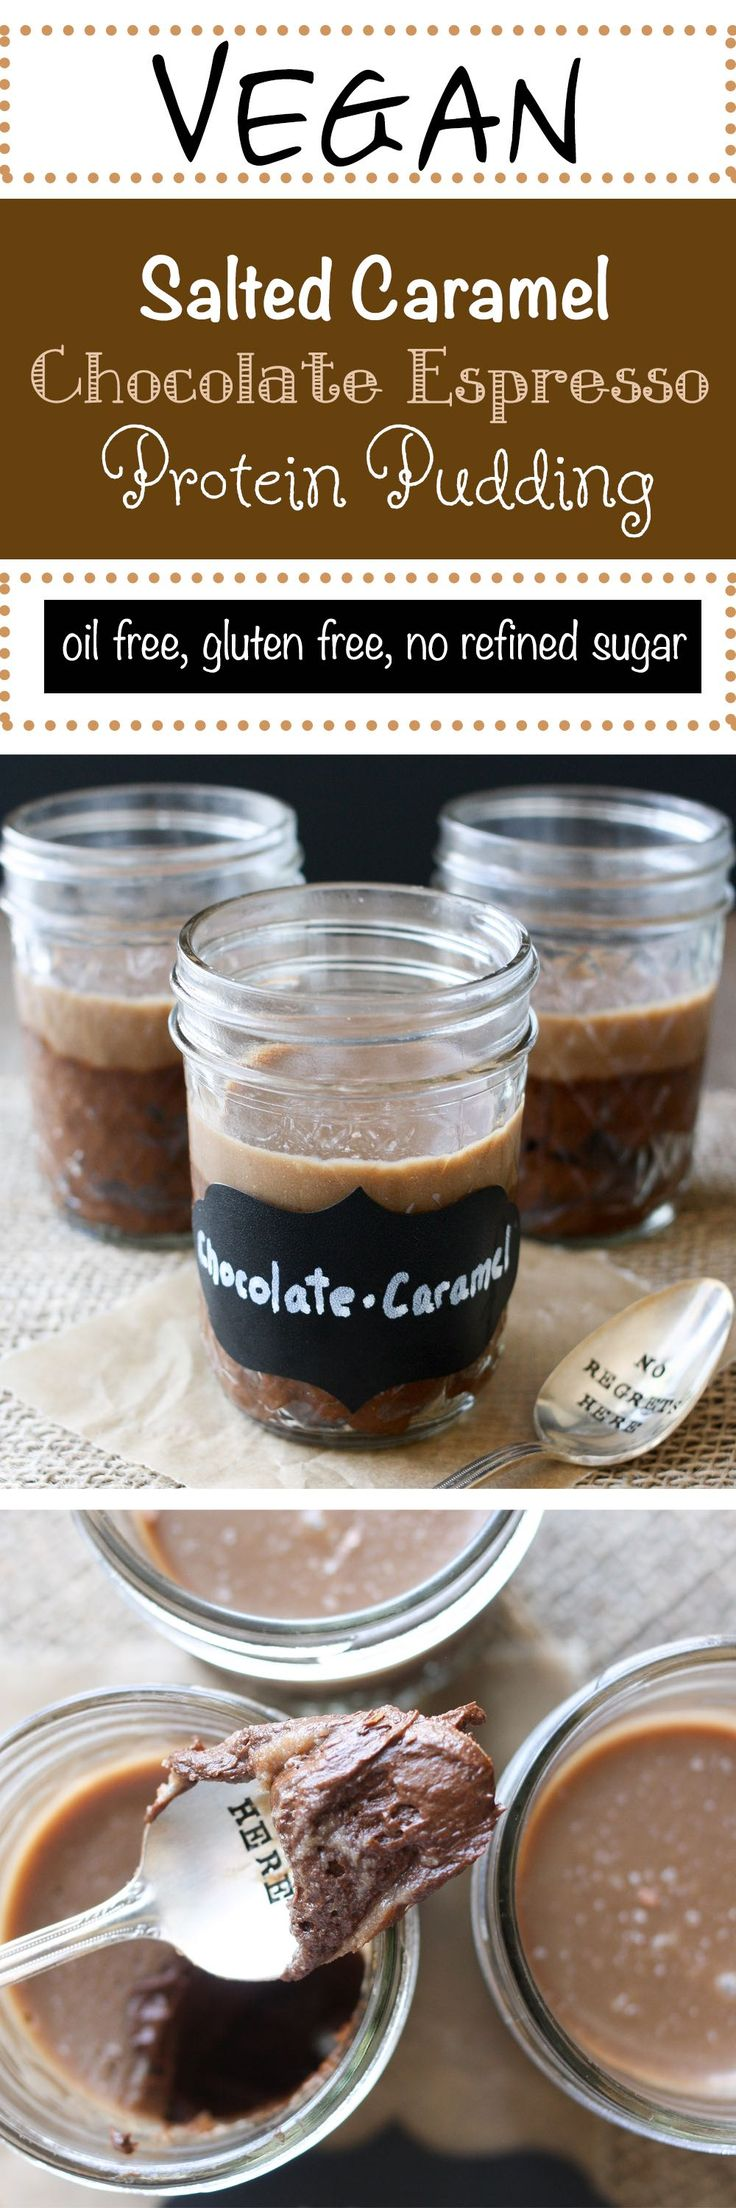 I love Caramel!!!!- posted by http://whatwomenwantboutique.com/2015/03/why-cant-i-loose-weight/ Salted Caramel Chocolate Espresso Protein Pudding